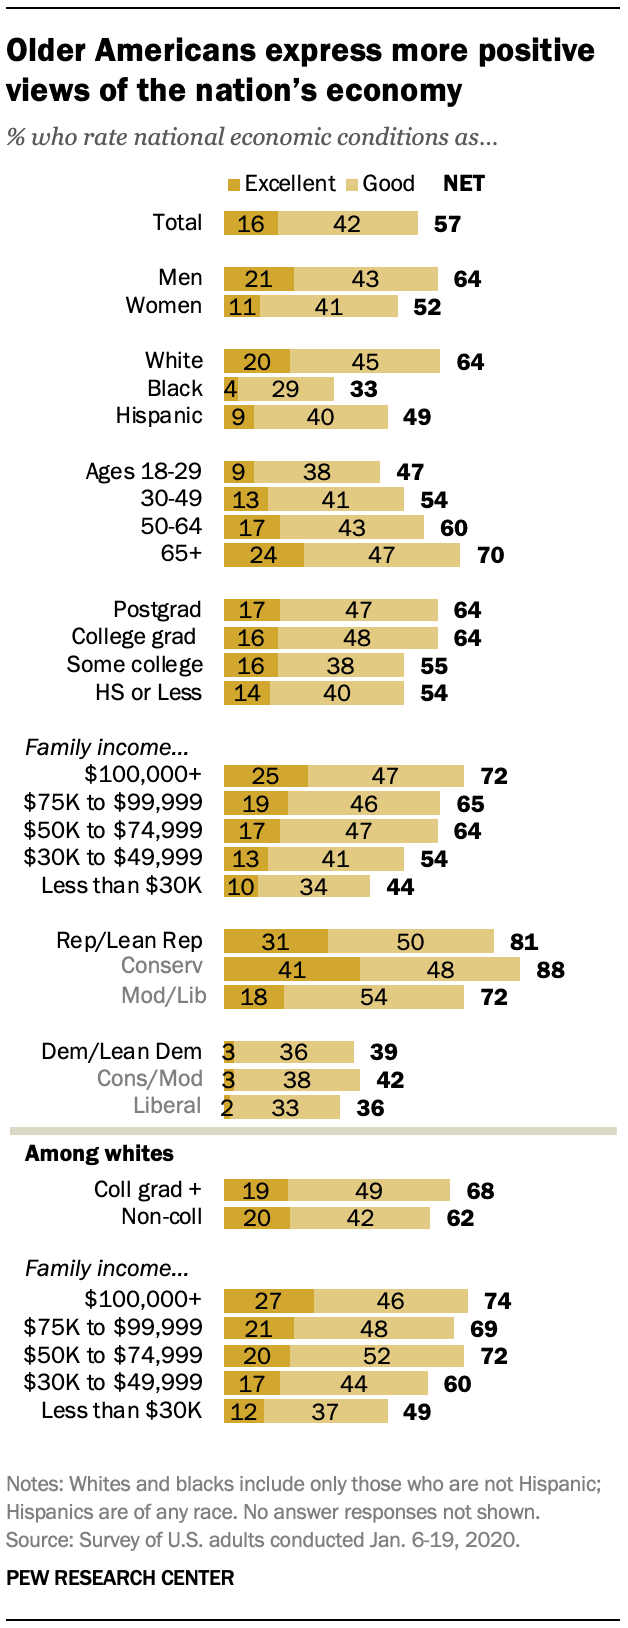 Older Americans express more positive views of the nation's economy